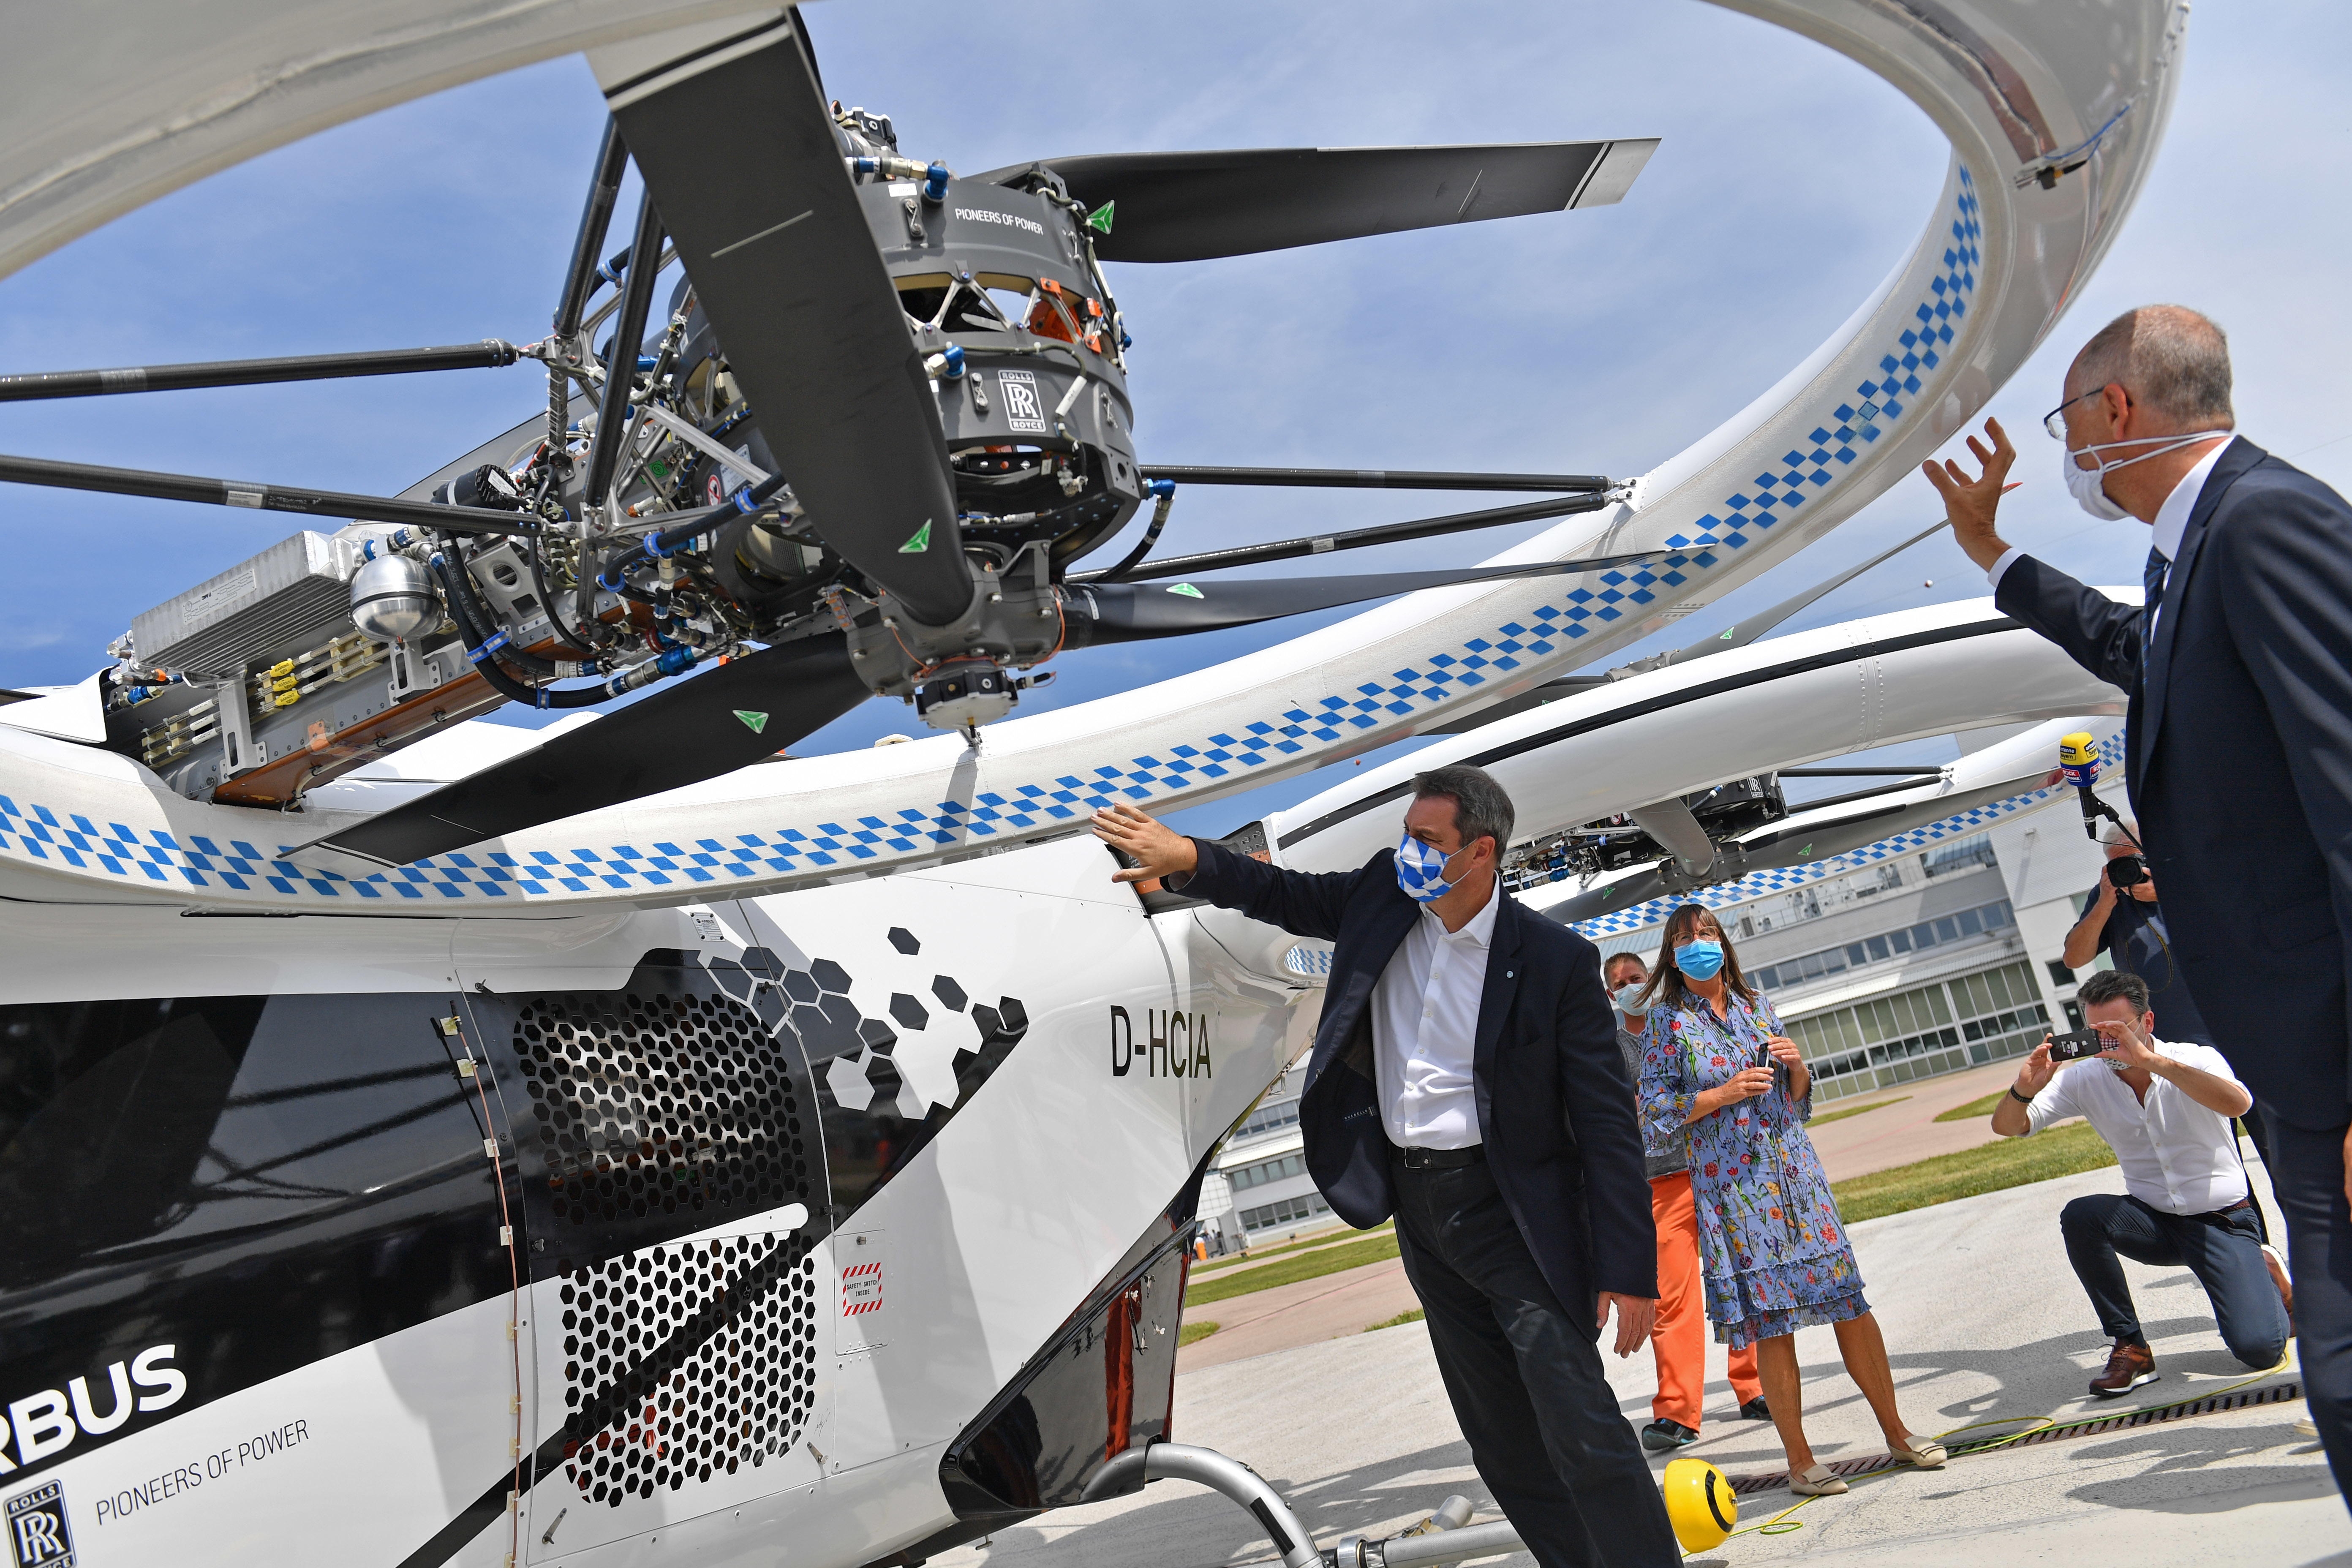 The Airbus CITYAIRBUS flying taxi